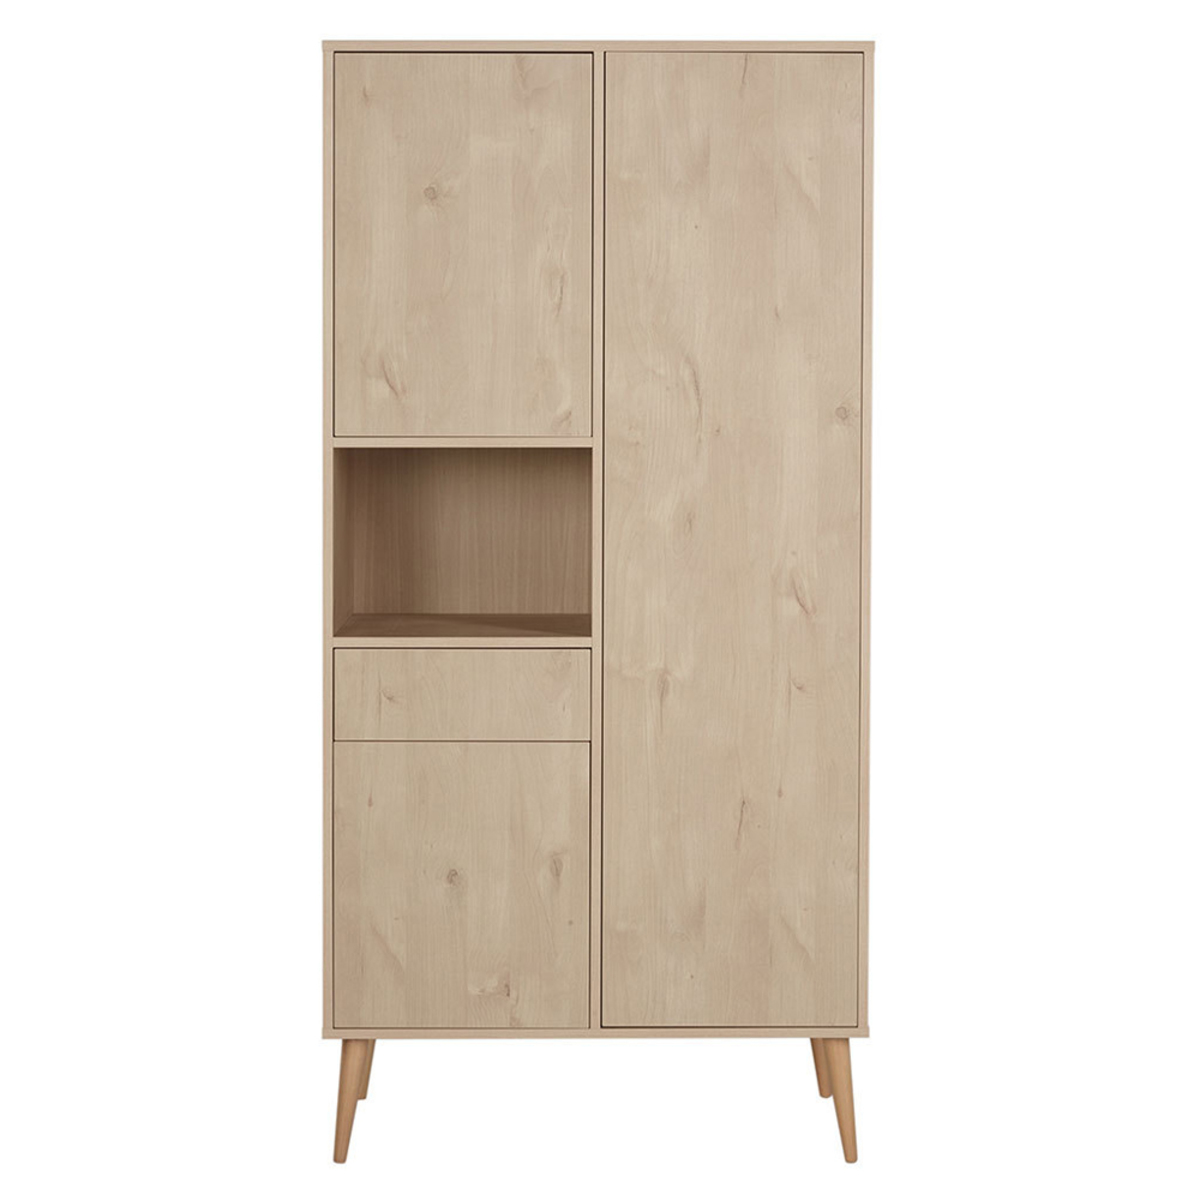 Armoire Armoire 2 Portes Cocon - Natural Oak Armoire 2 Portes Cocon - Natural Oak